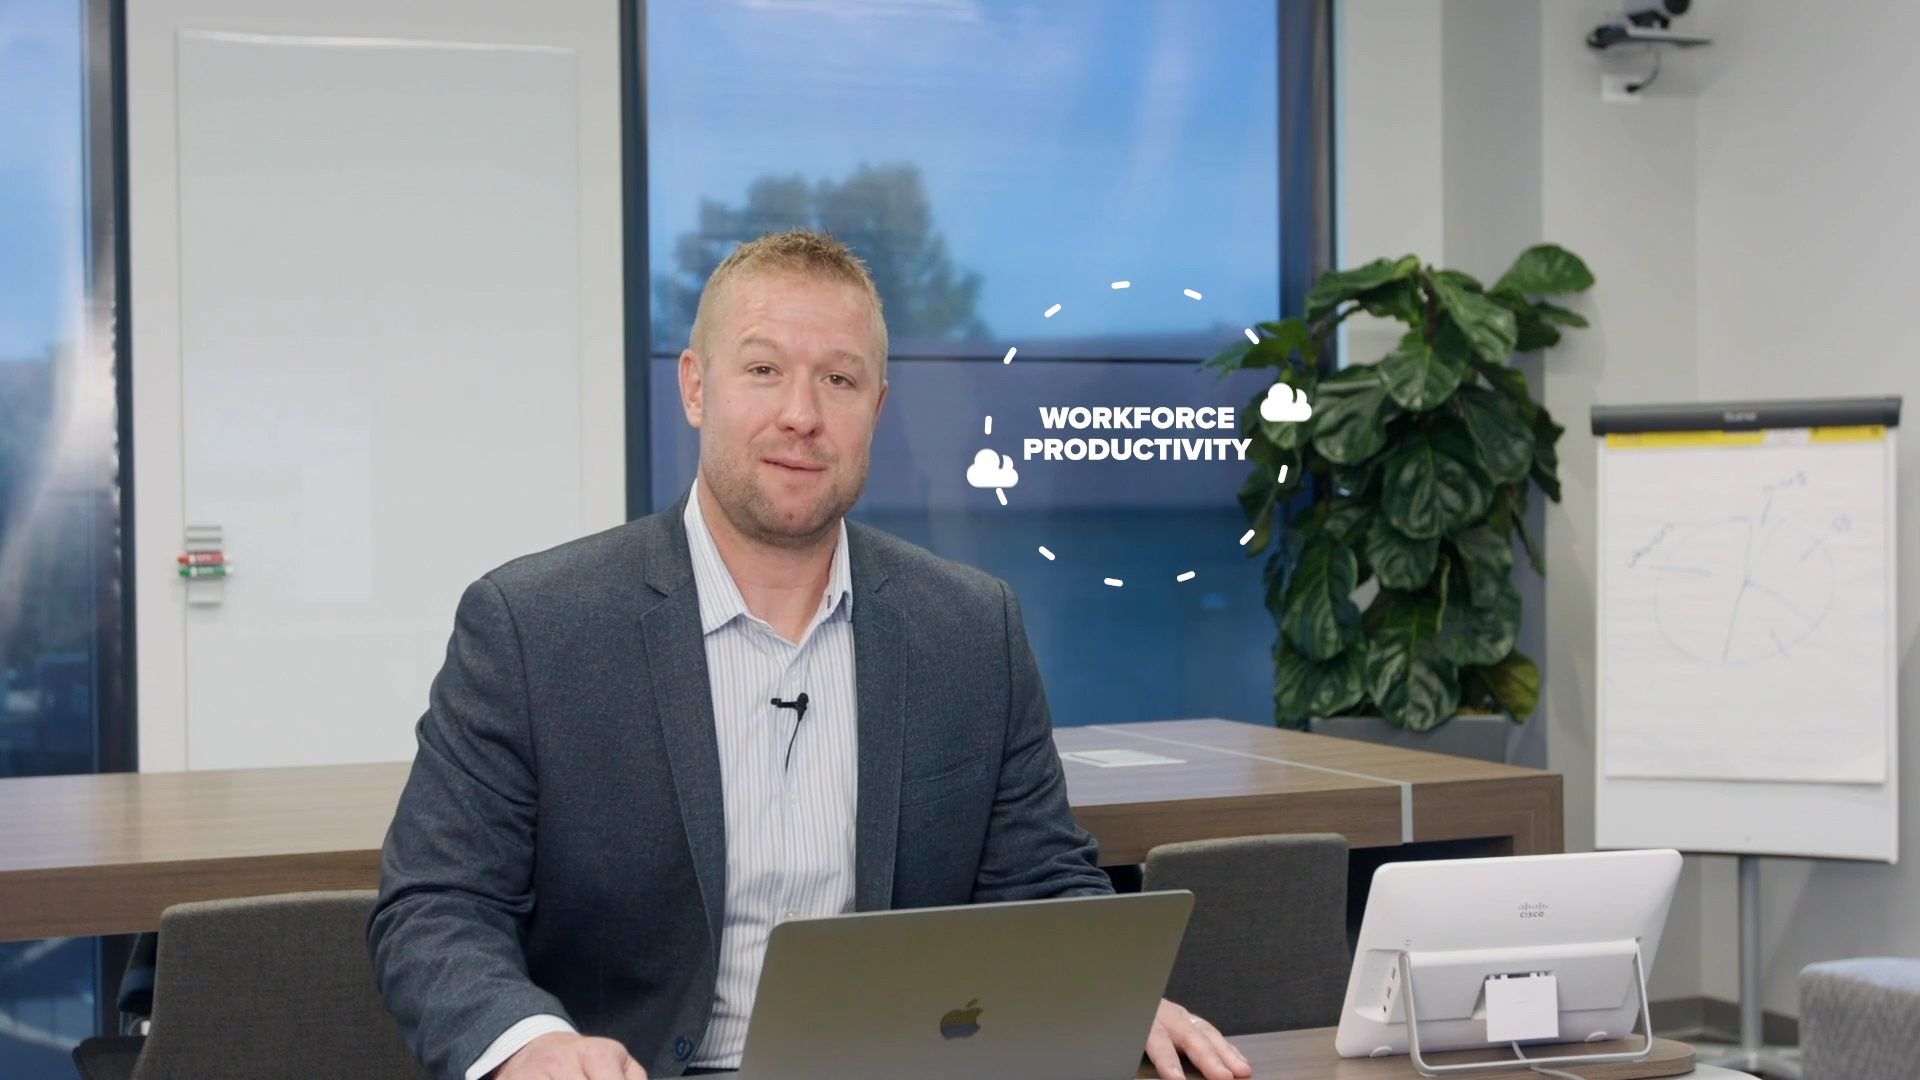 Matt Long demonstrates different ways SD-WAN can positively impact your organization financially.